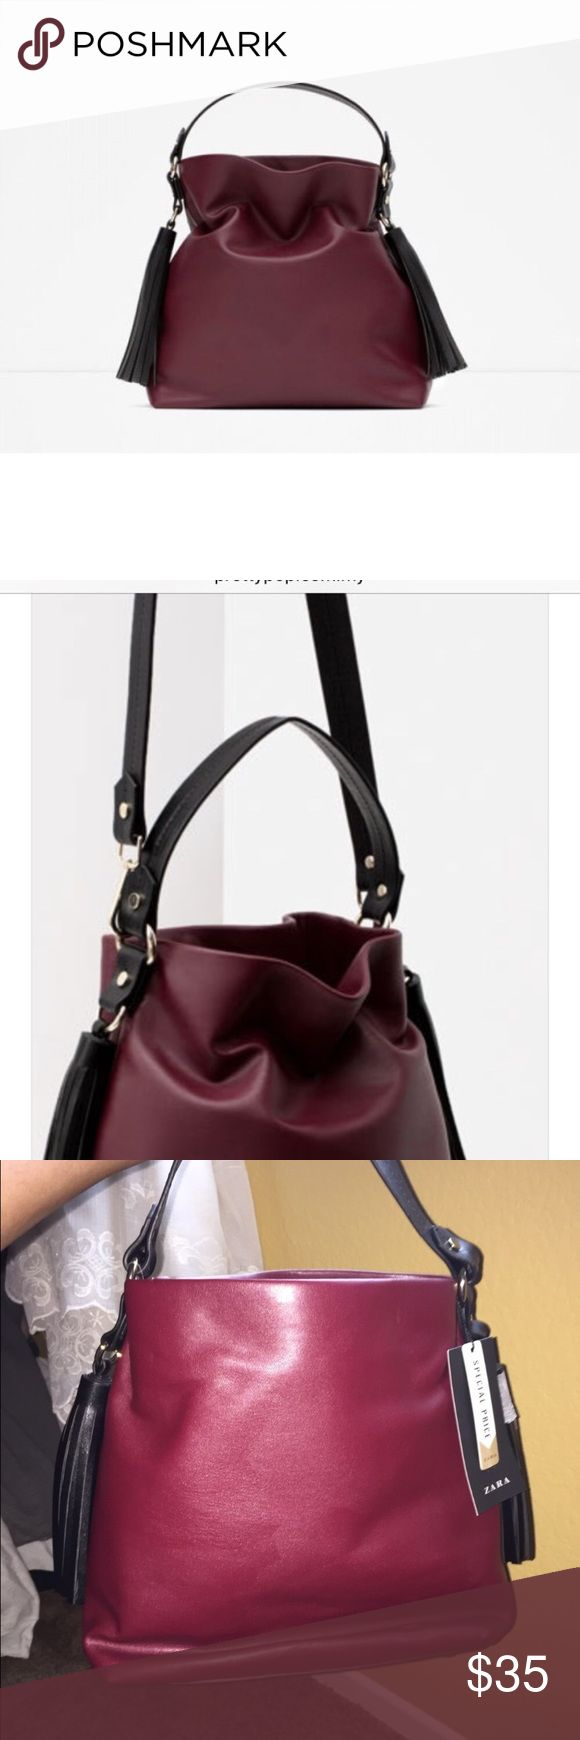 NWT Zara Handbag NWT Zara Handbag  in the color of burgundy. Has s drawstring. Medium sized. Zara Bags Shoulder Bags